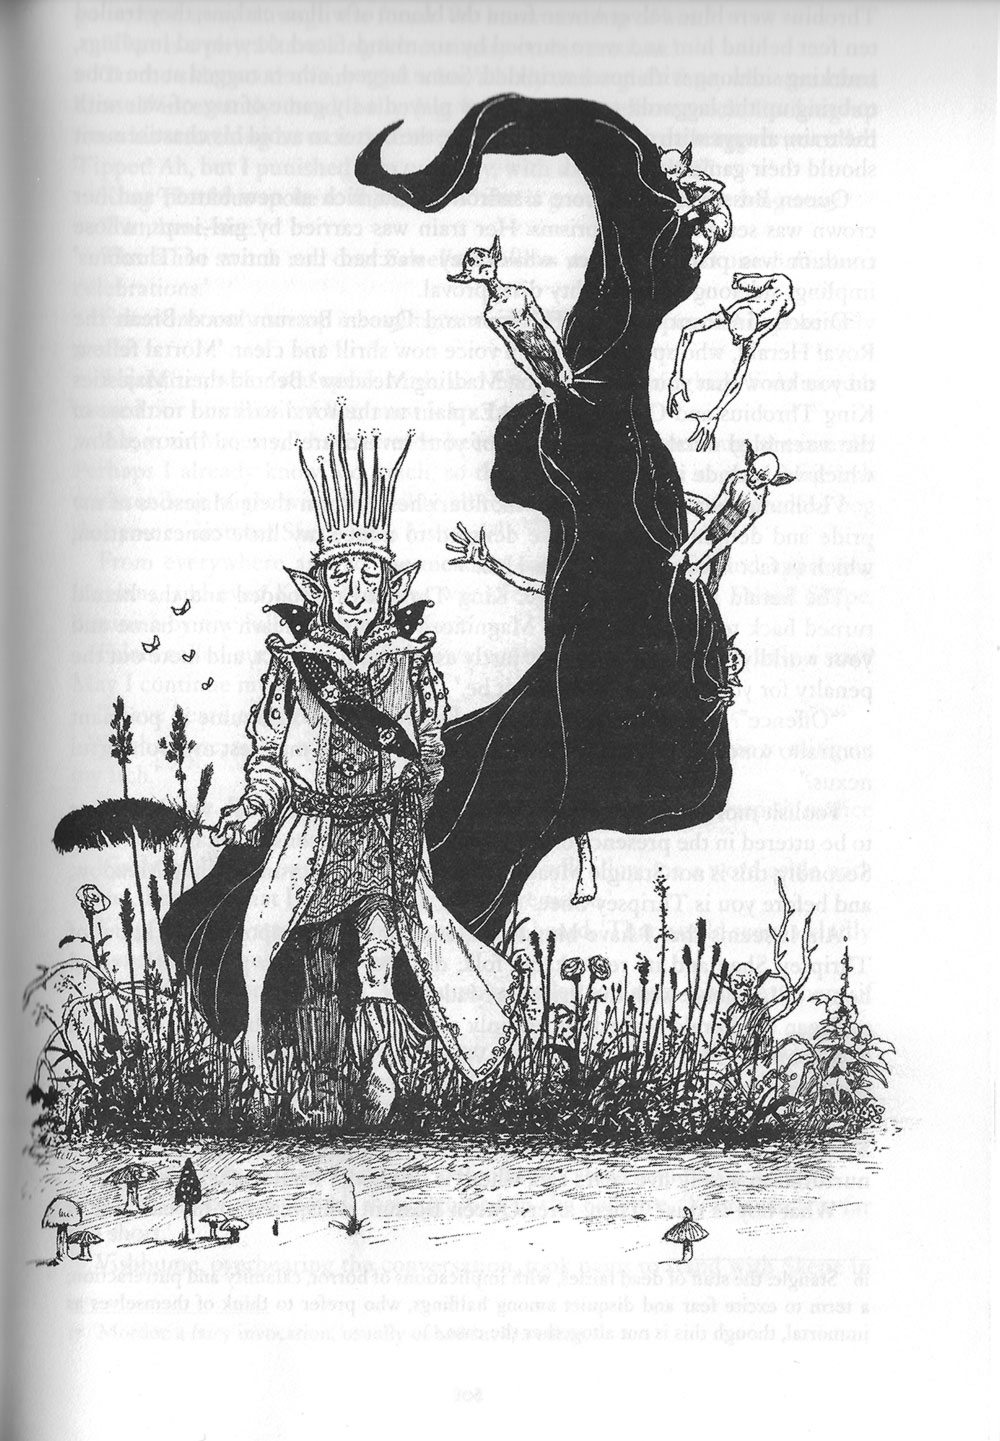 King Throbius of Thripsey Shee, illustration by Les Edwards.